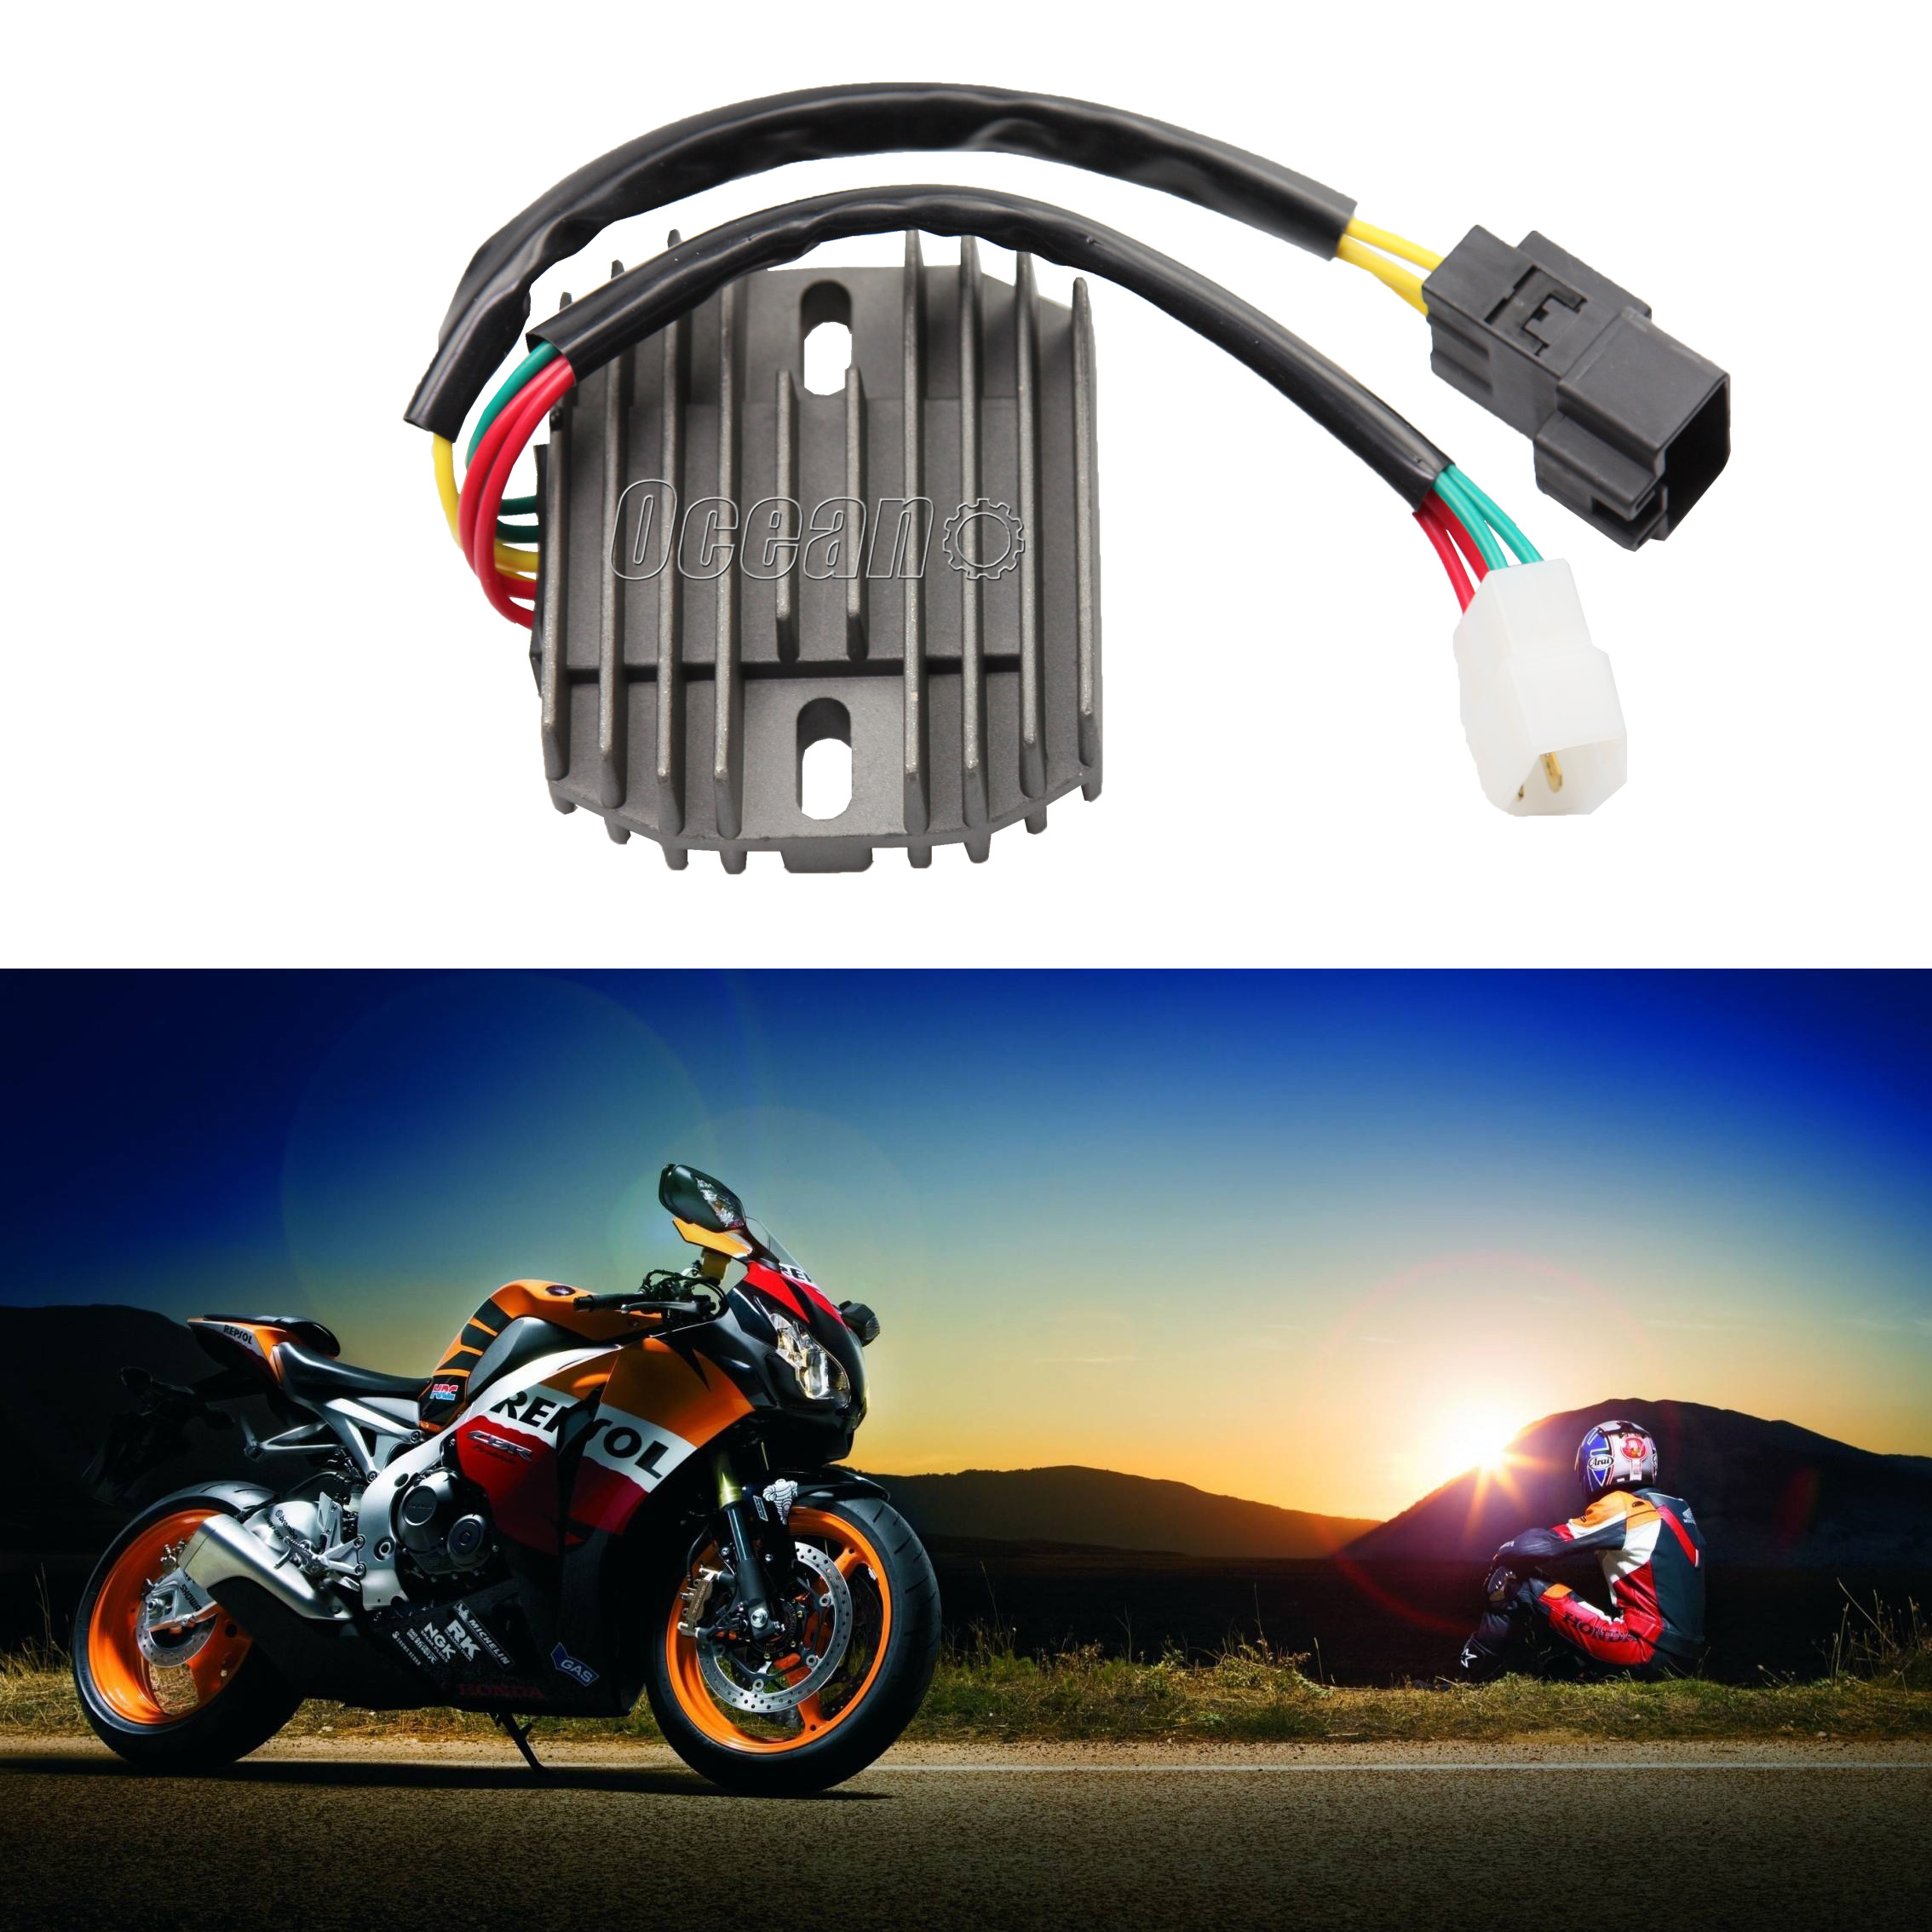 New Voltage Regulator Rectifier For Honda Cbr600f4 Cbr600f4i 2001 2006 Cbr 600 F4i